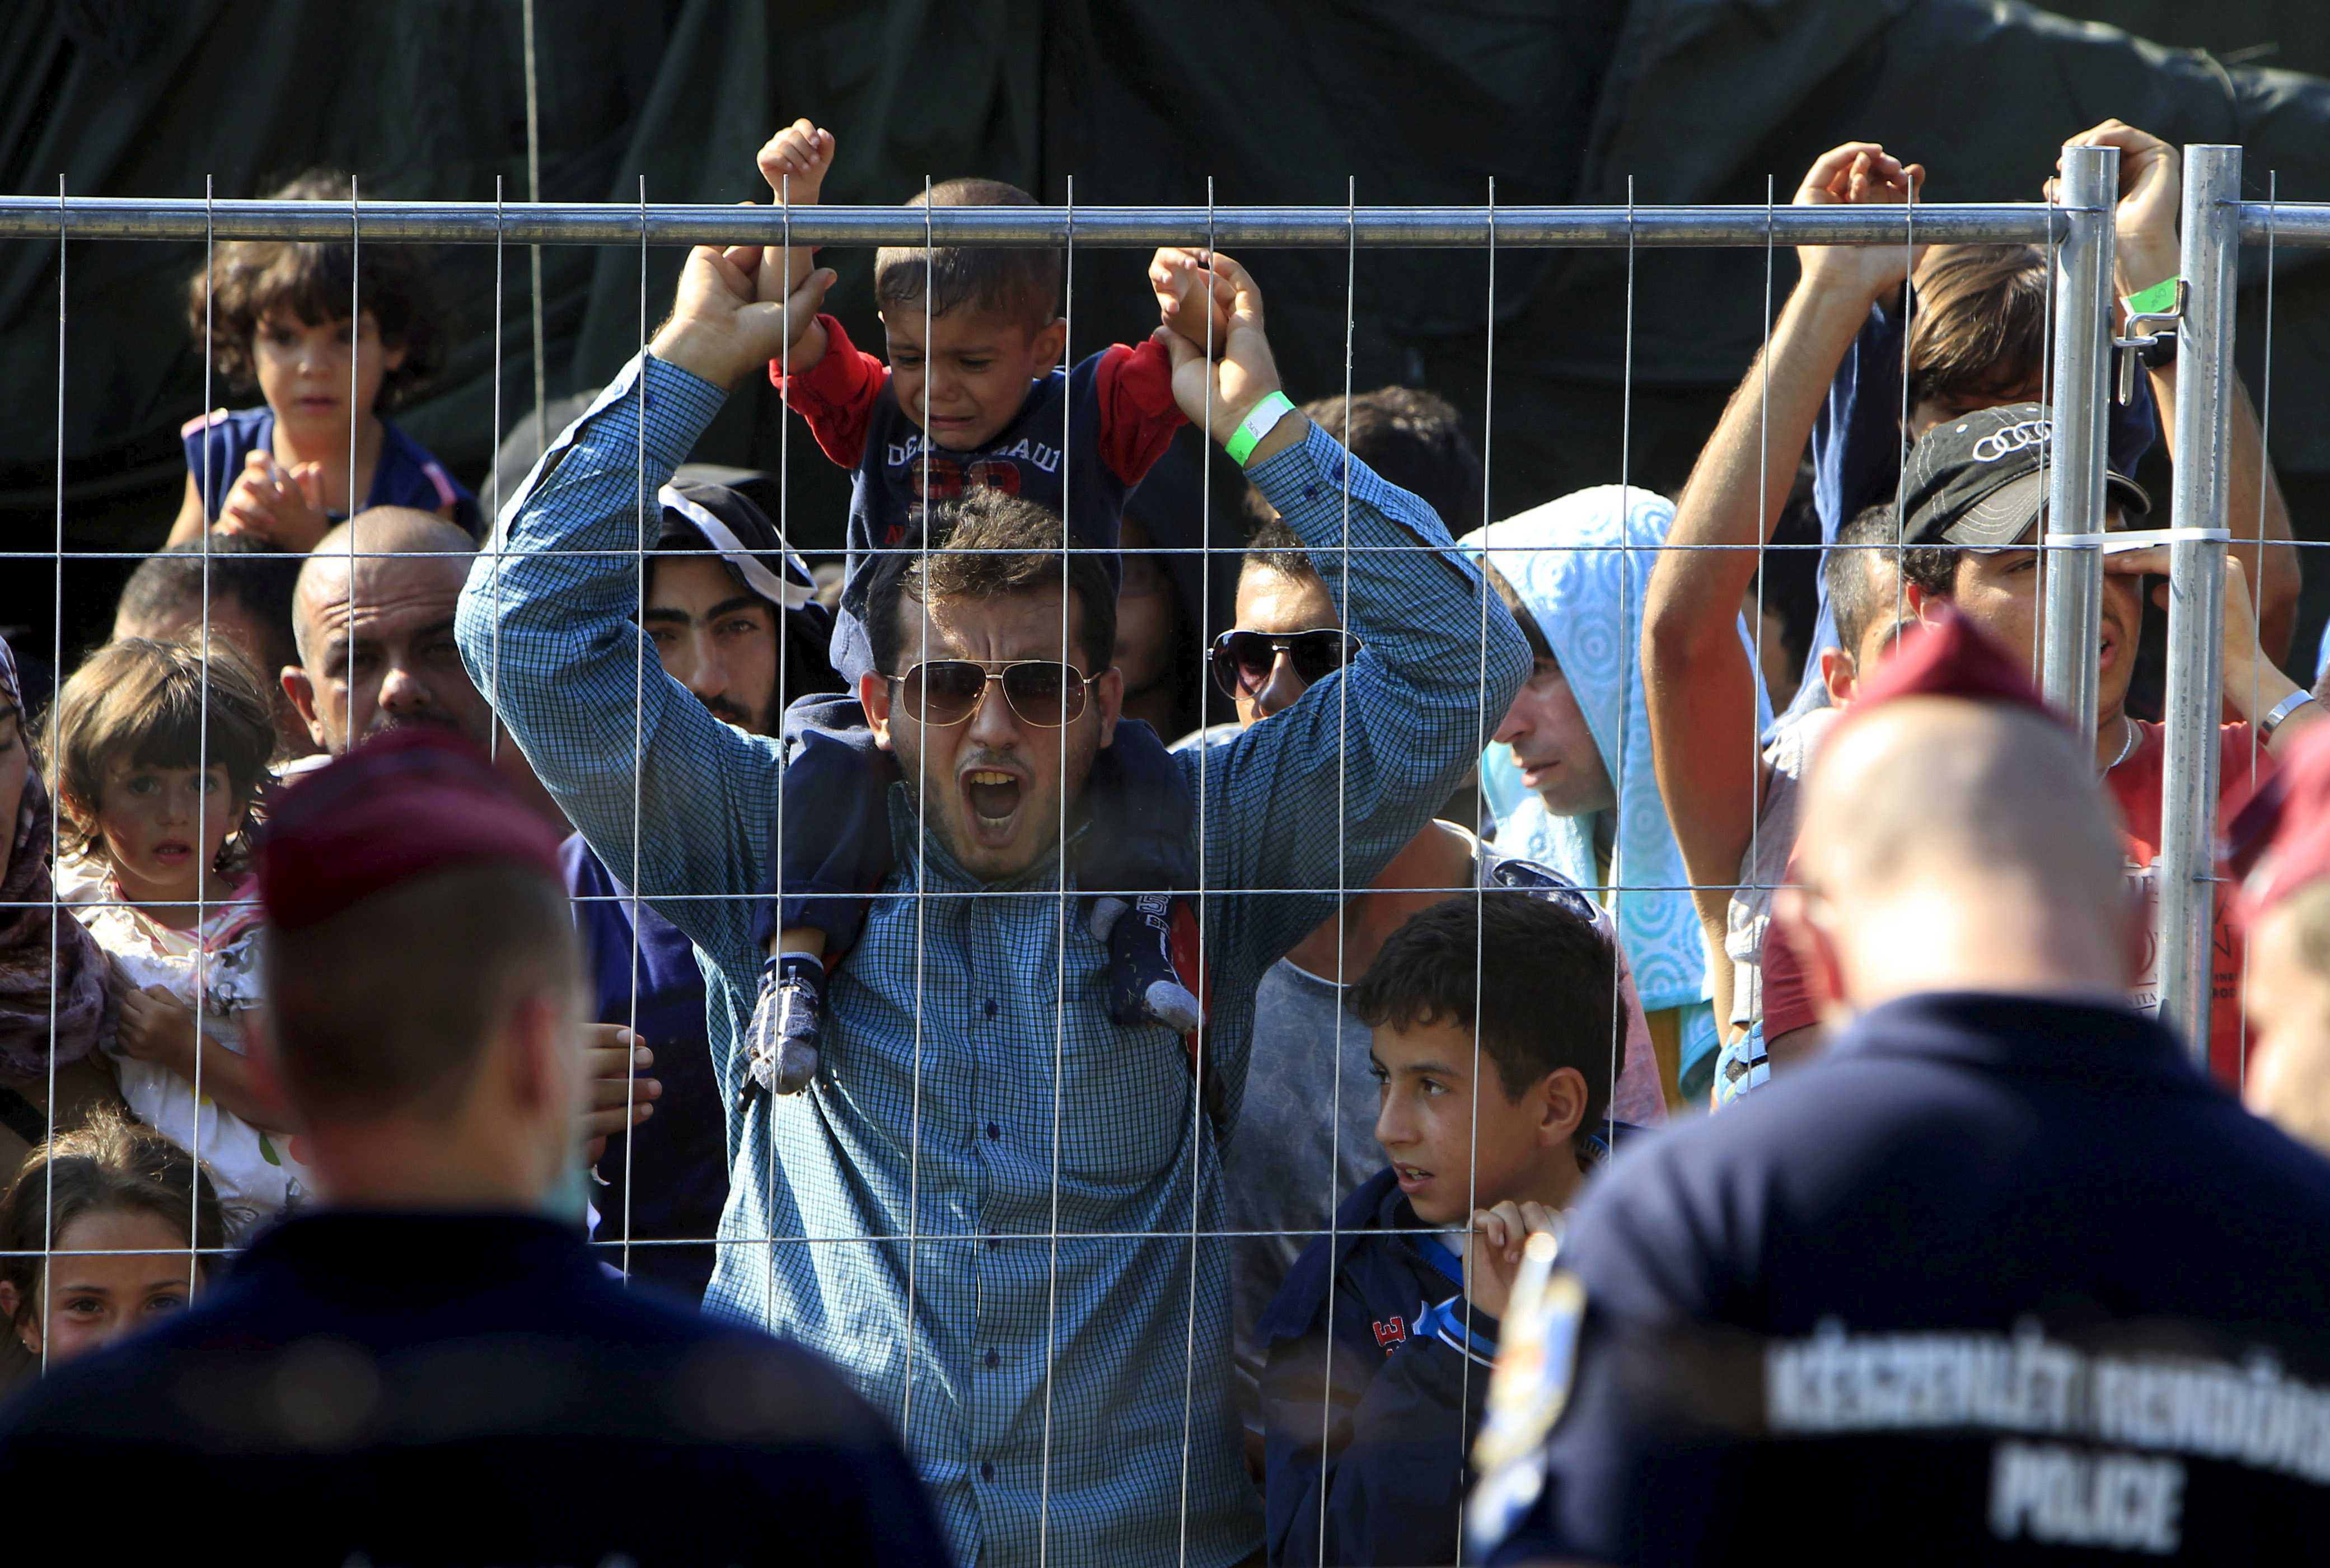 Syrian migrants shout slogans at a refugee camp in Roszke, Hungary, August 28, 2015.